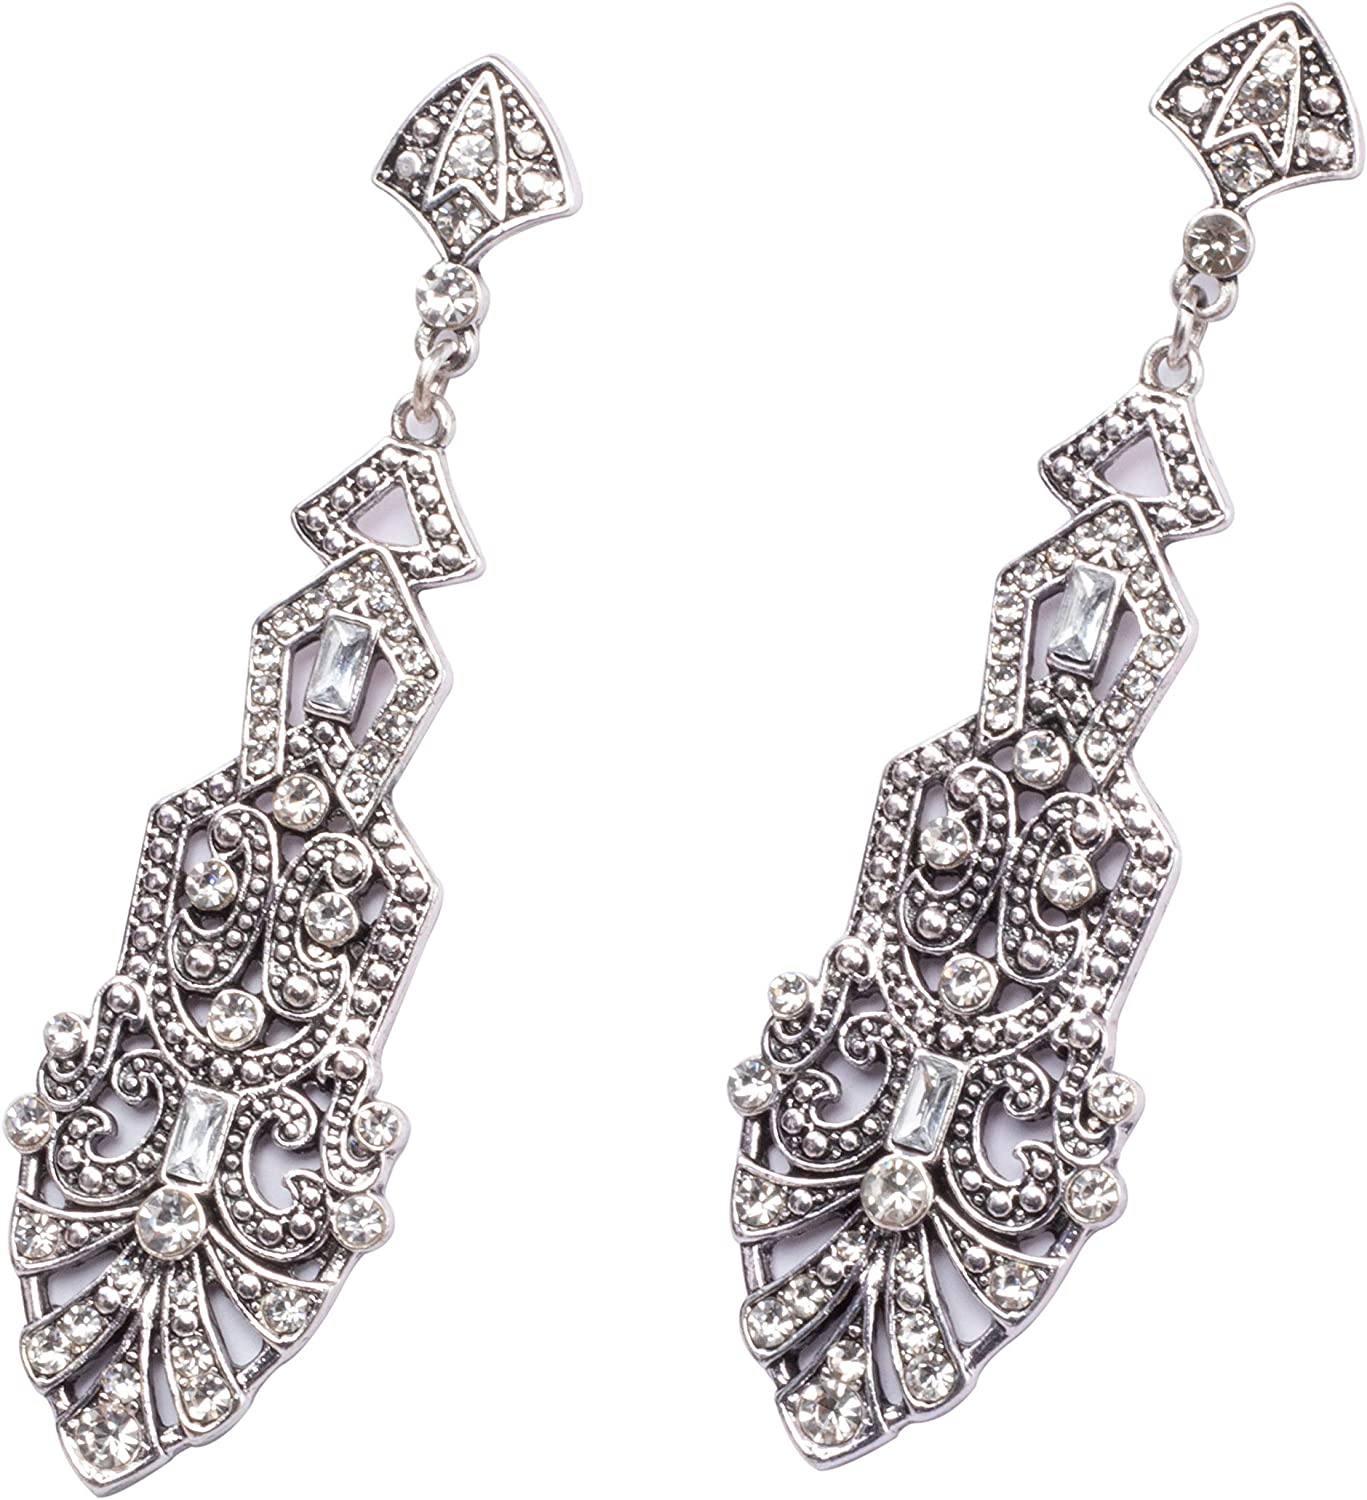 1920s Gatsby Jewelry- Flapper Earrings, Necklaces, Bracelets Metme Great Gatsby Earrings for Women 1920s Flapper Dangle Earrings Vintage Art Deco Earrings 20s Costume Accessories $12.99 AT vintagedancer.com